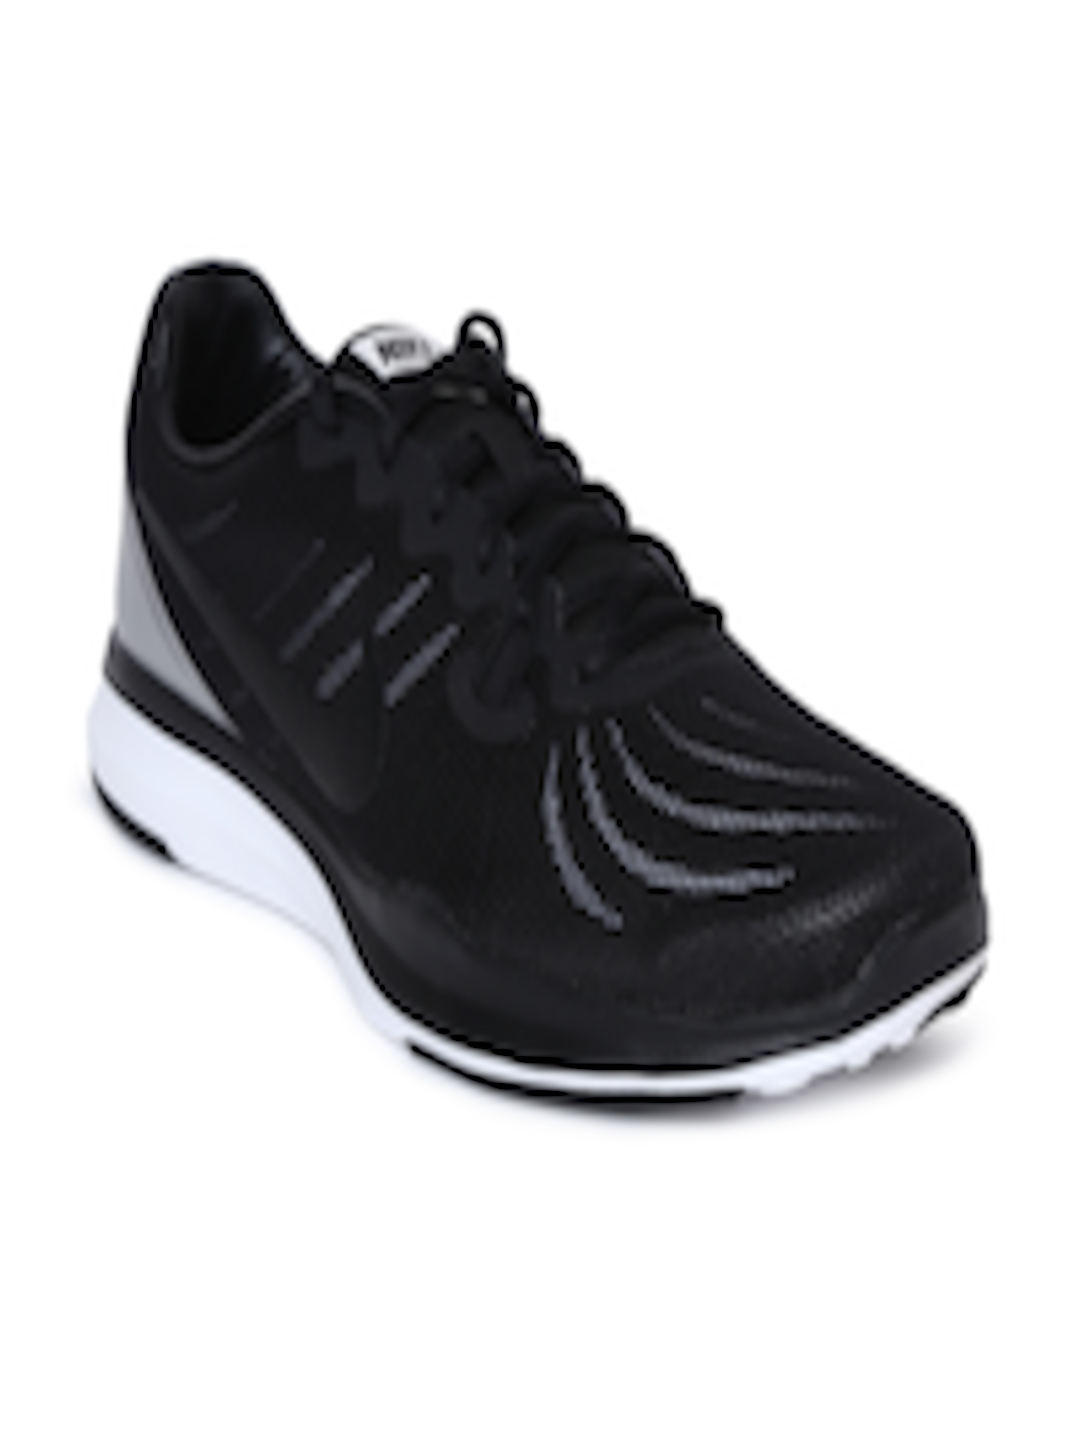 9aafcaf7b0ce Buy Nike Women Black In Season Tr 7 Prm Training Shoes - Sports Shoes for  Women 8102283